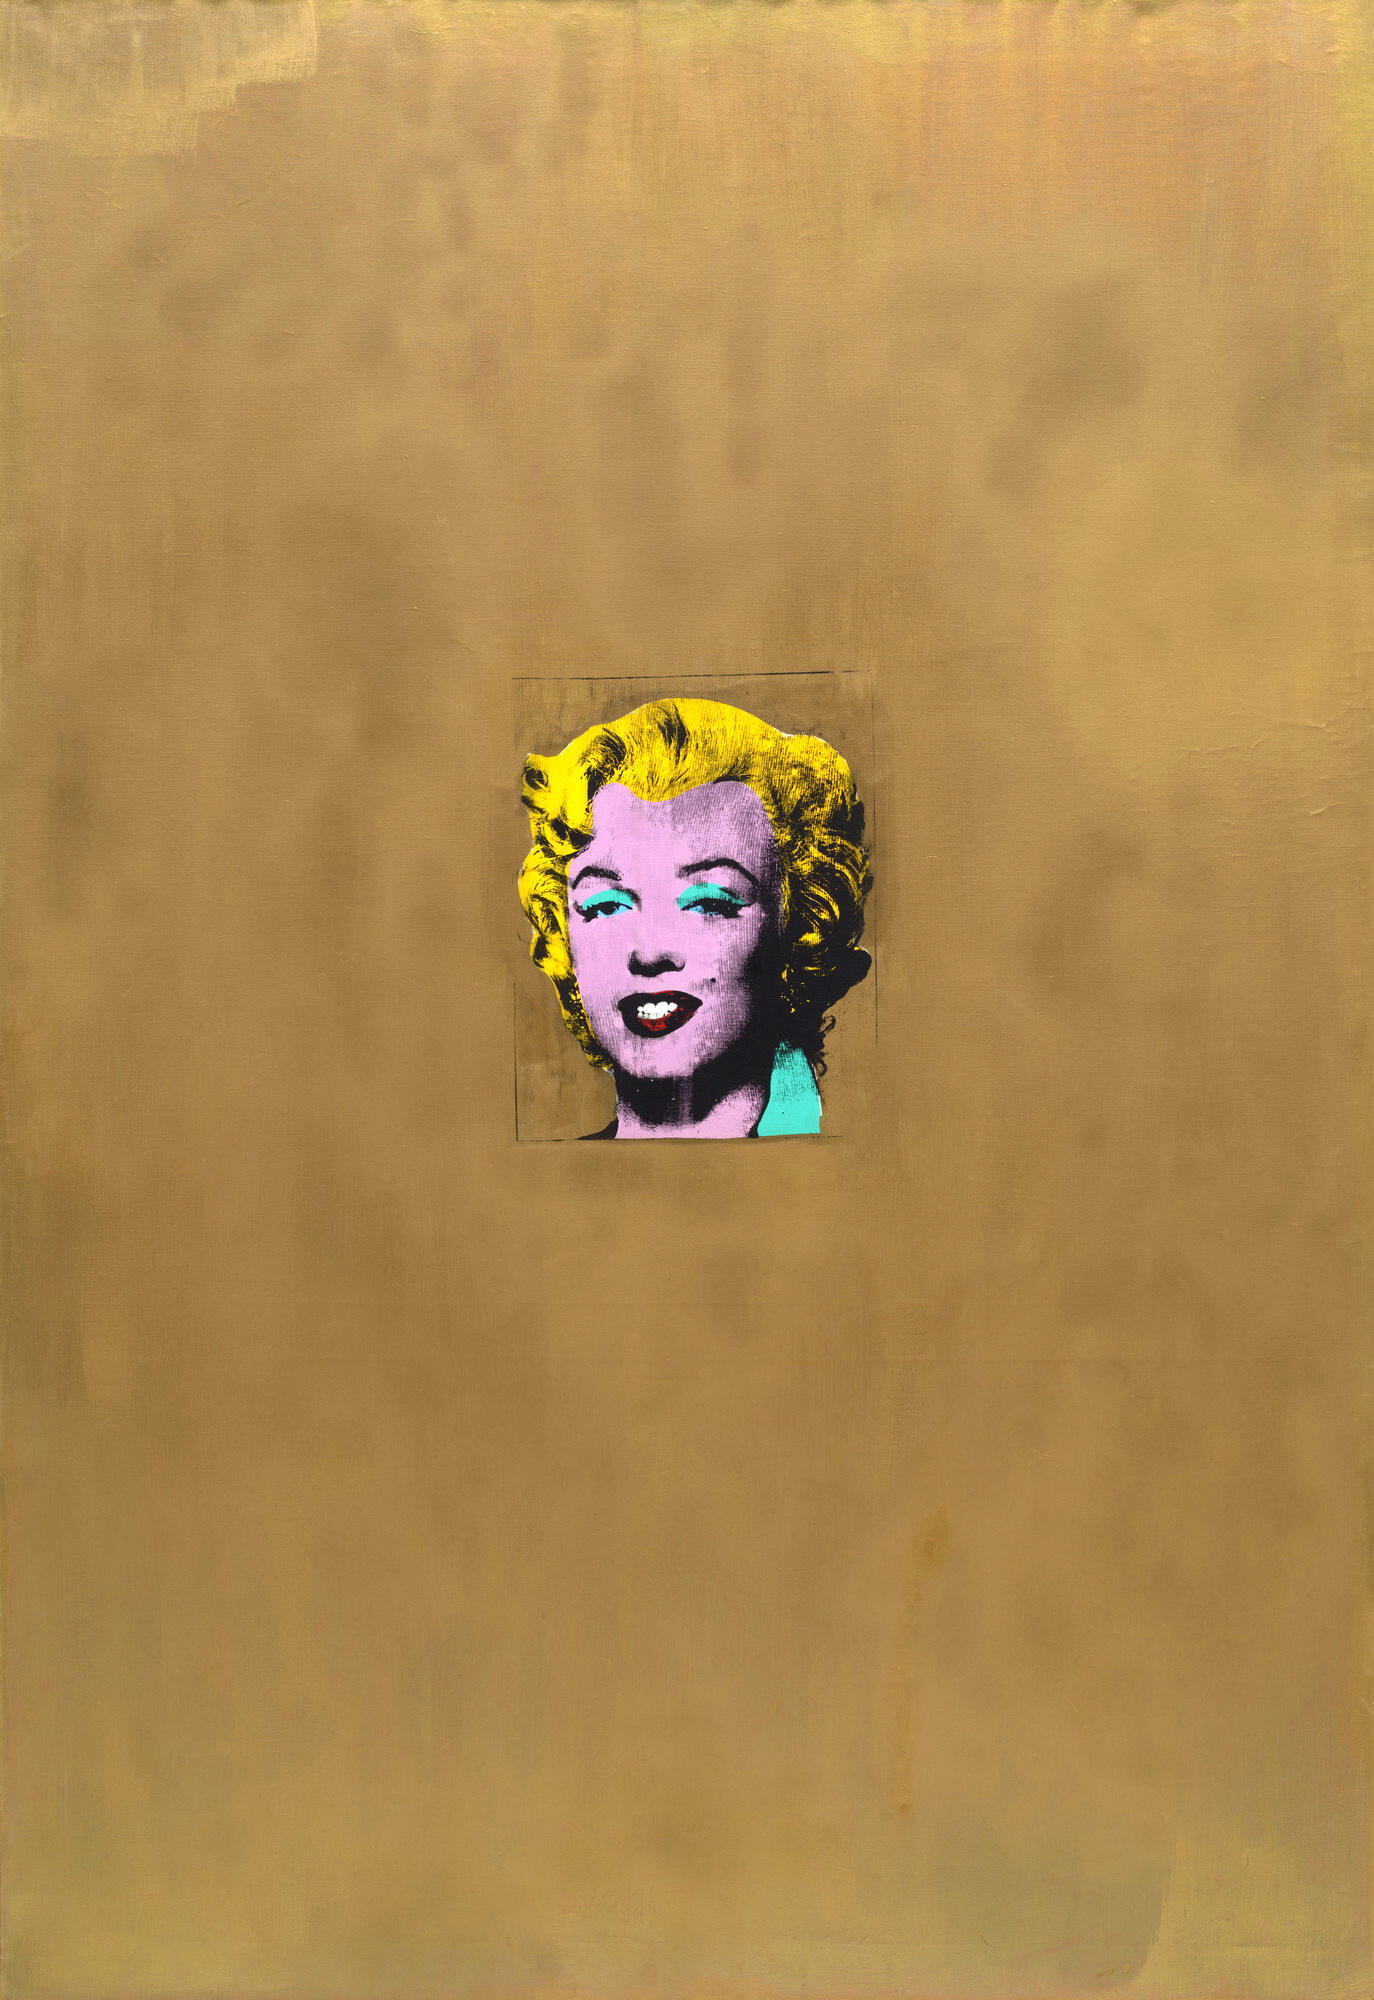 'Gold Marilyn Monroe' painting by Andy Warhol.